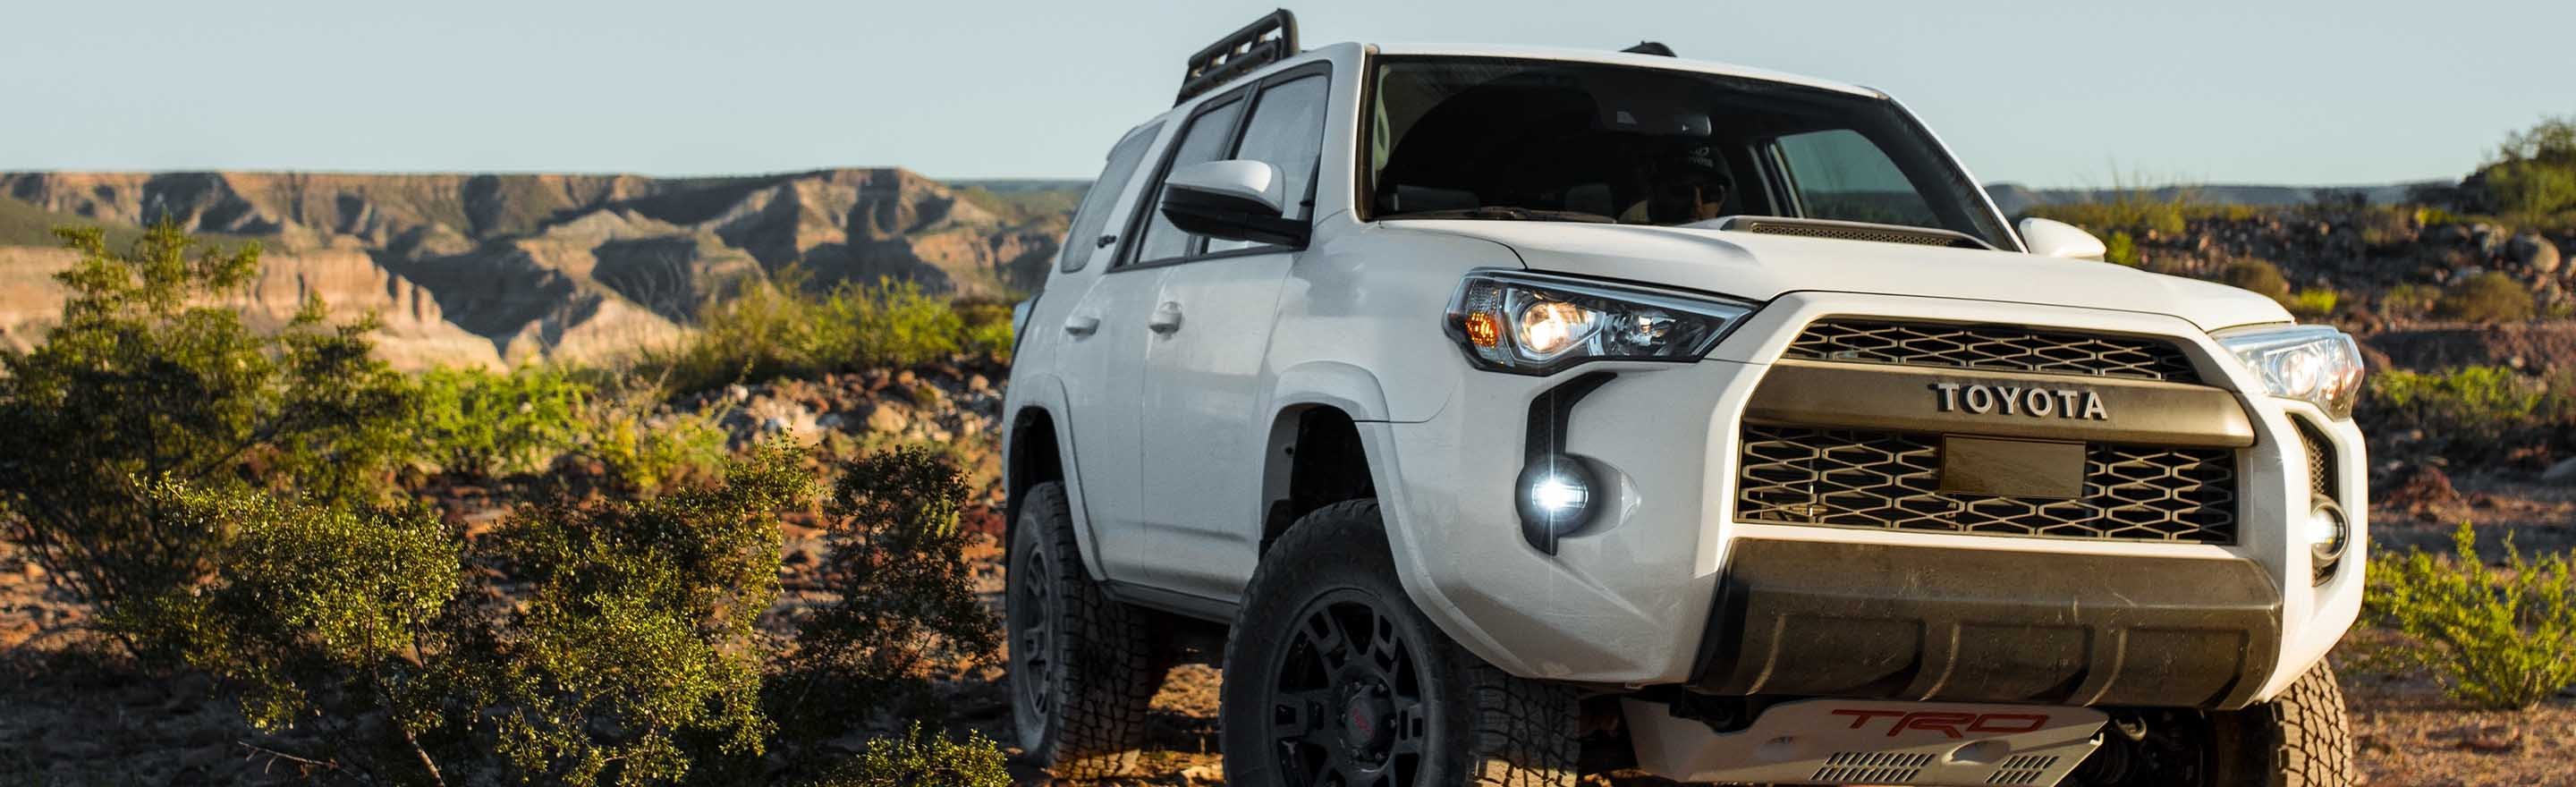 Drive the Rugged 2020 Toyota 4Runner SUV in Pleasant Hills, PA